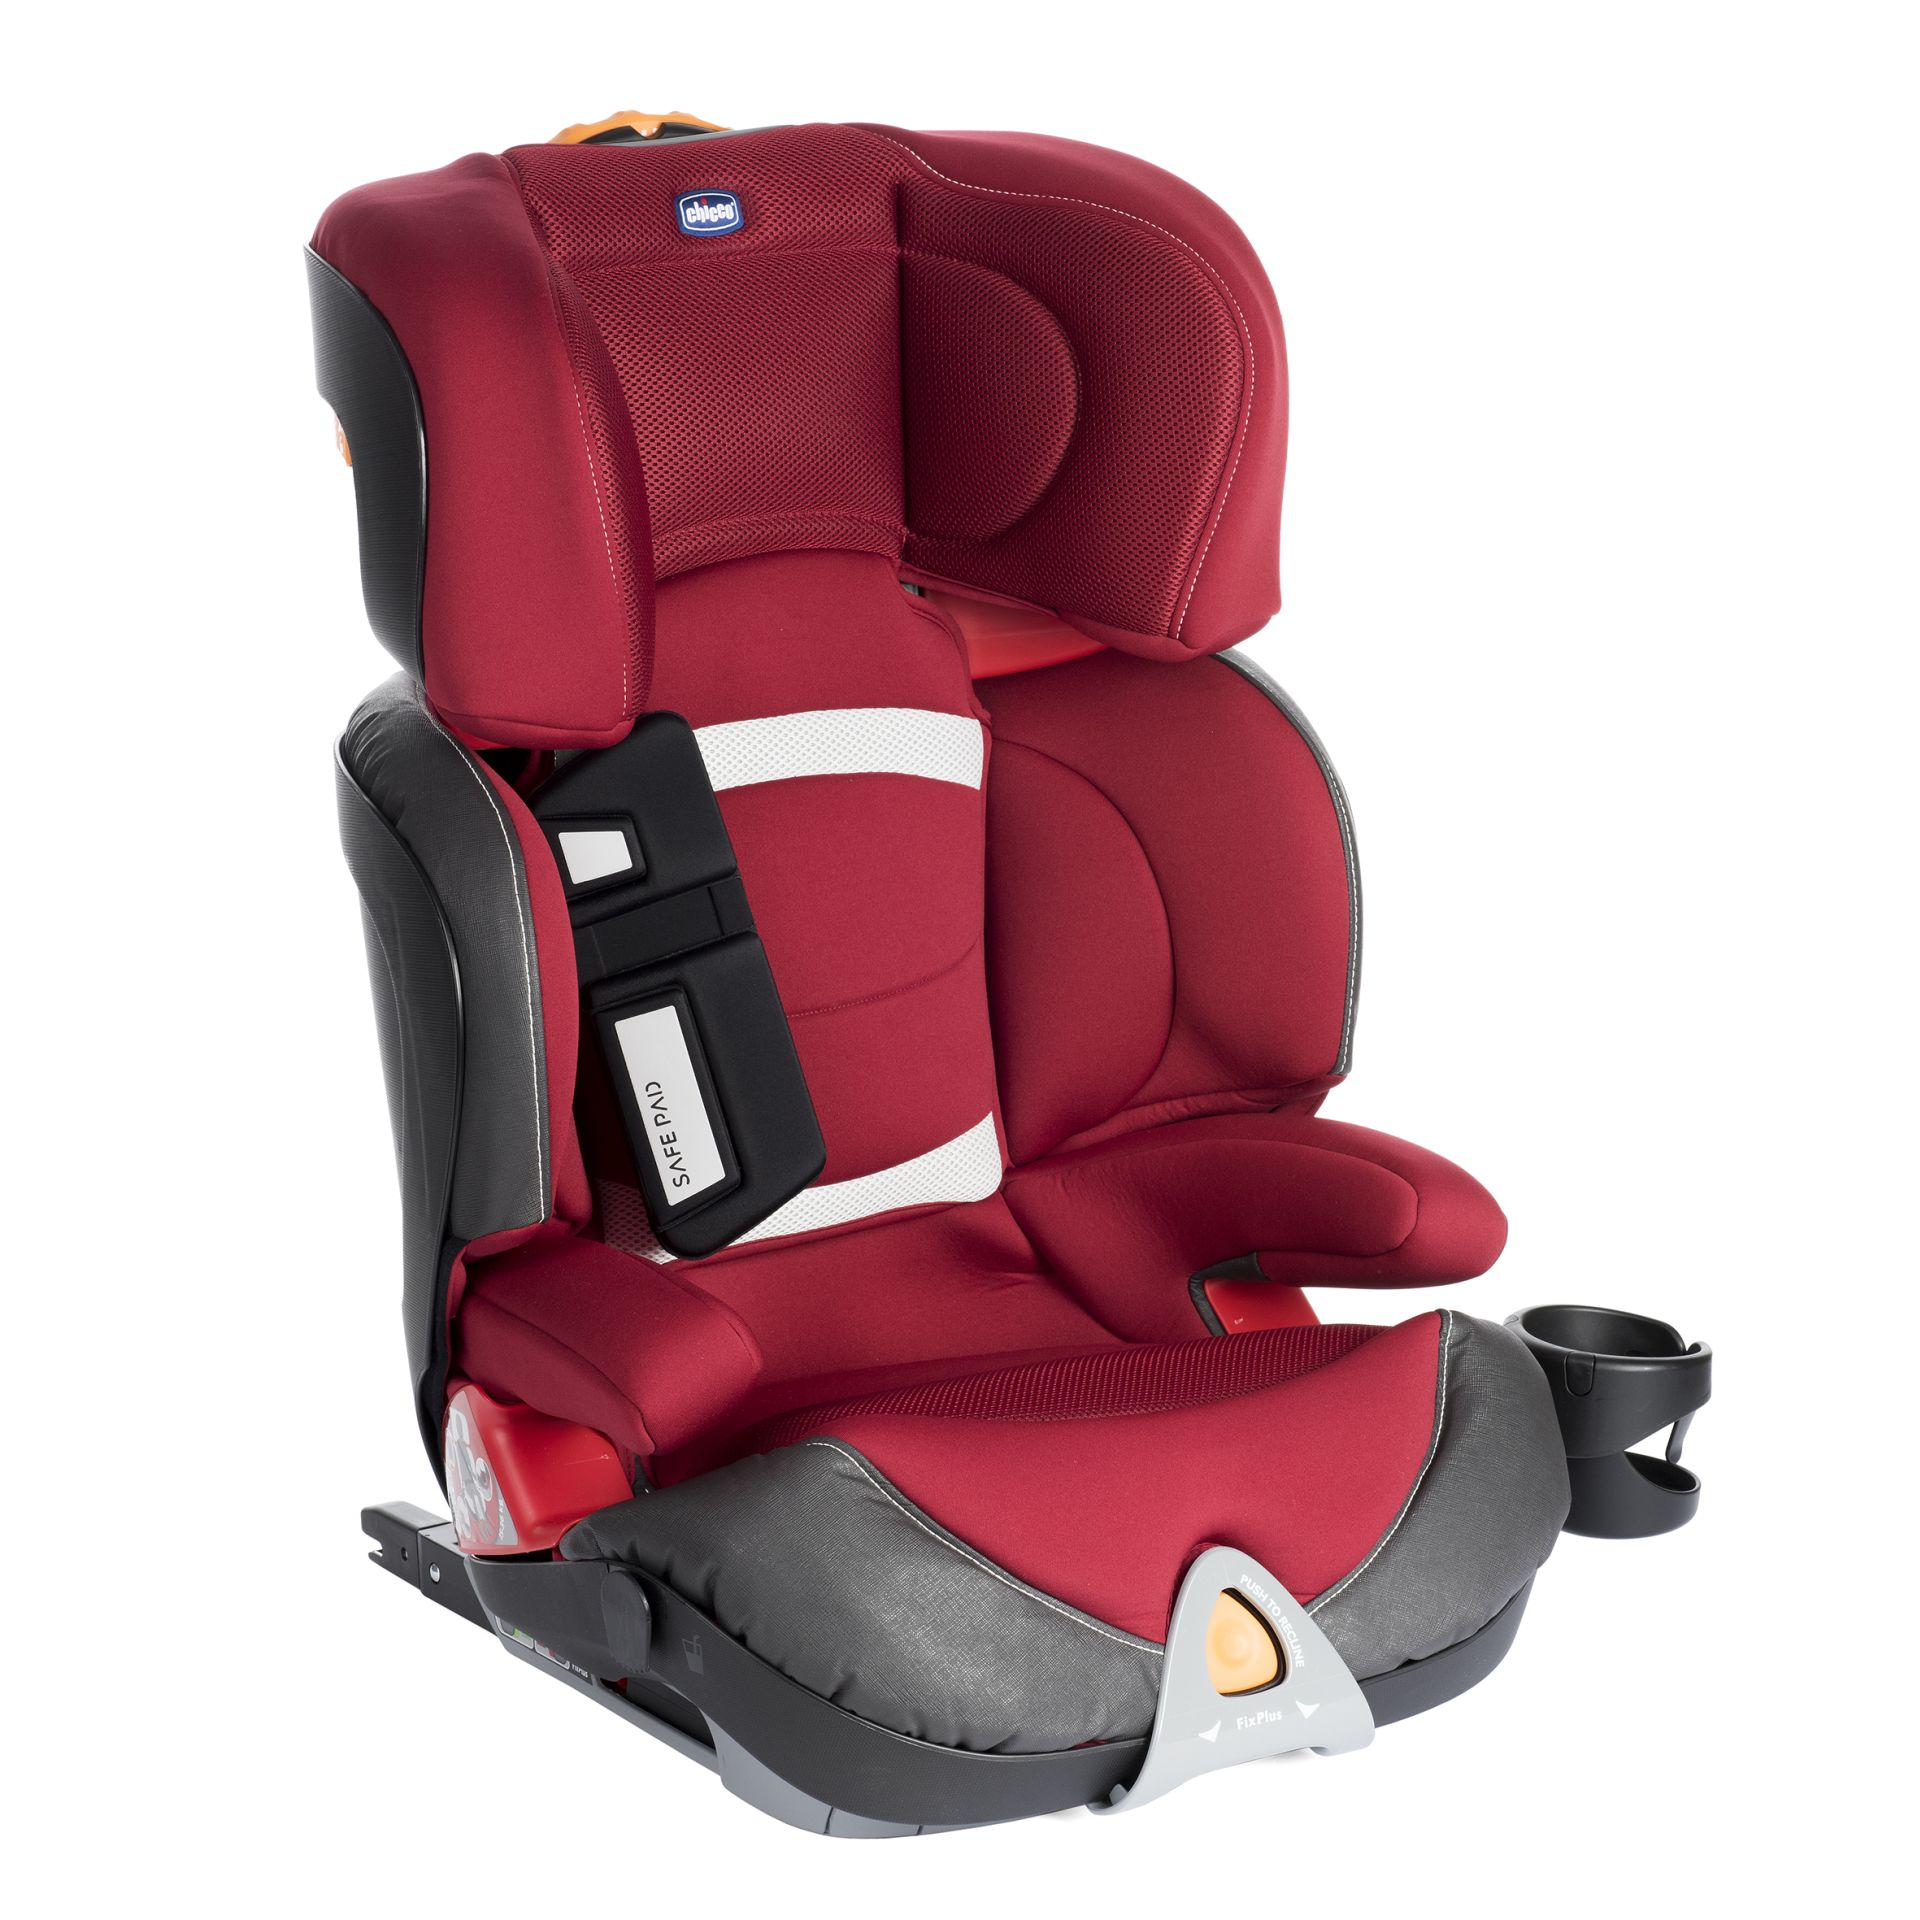 Red Chicco Car Seat >> Chicco Child Car Seat Oasys 2-3 Evo FixPlus 2018 Red Passion - Buy at kidsroom | Car Seats